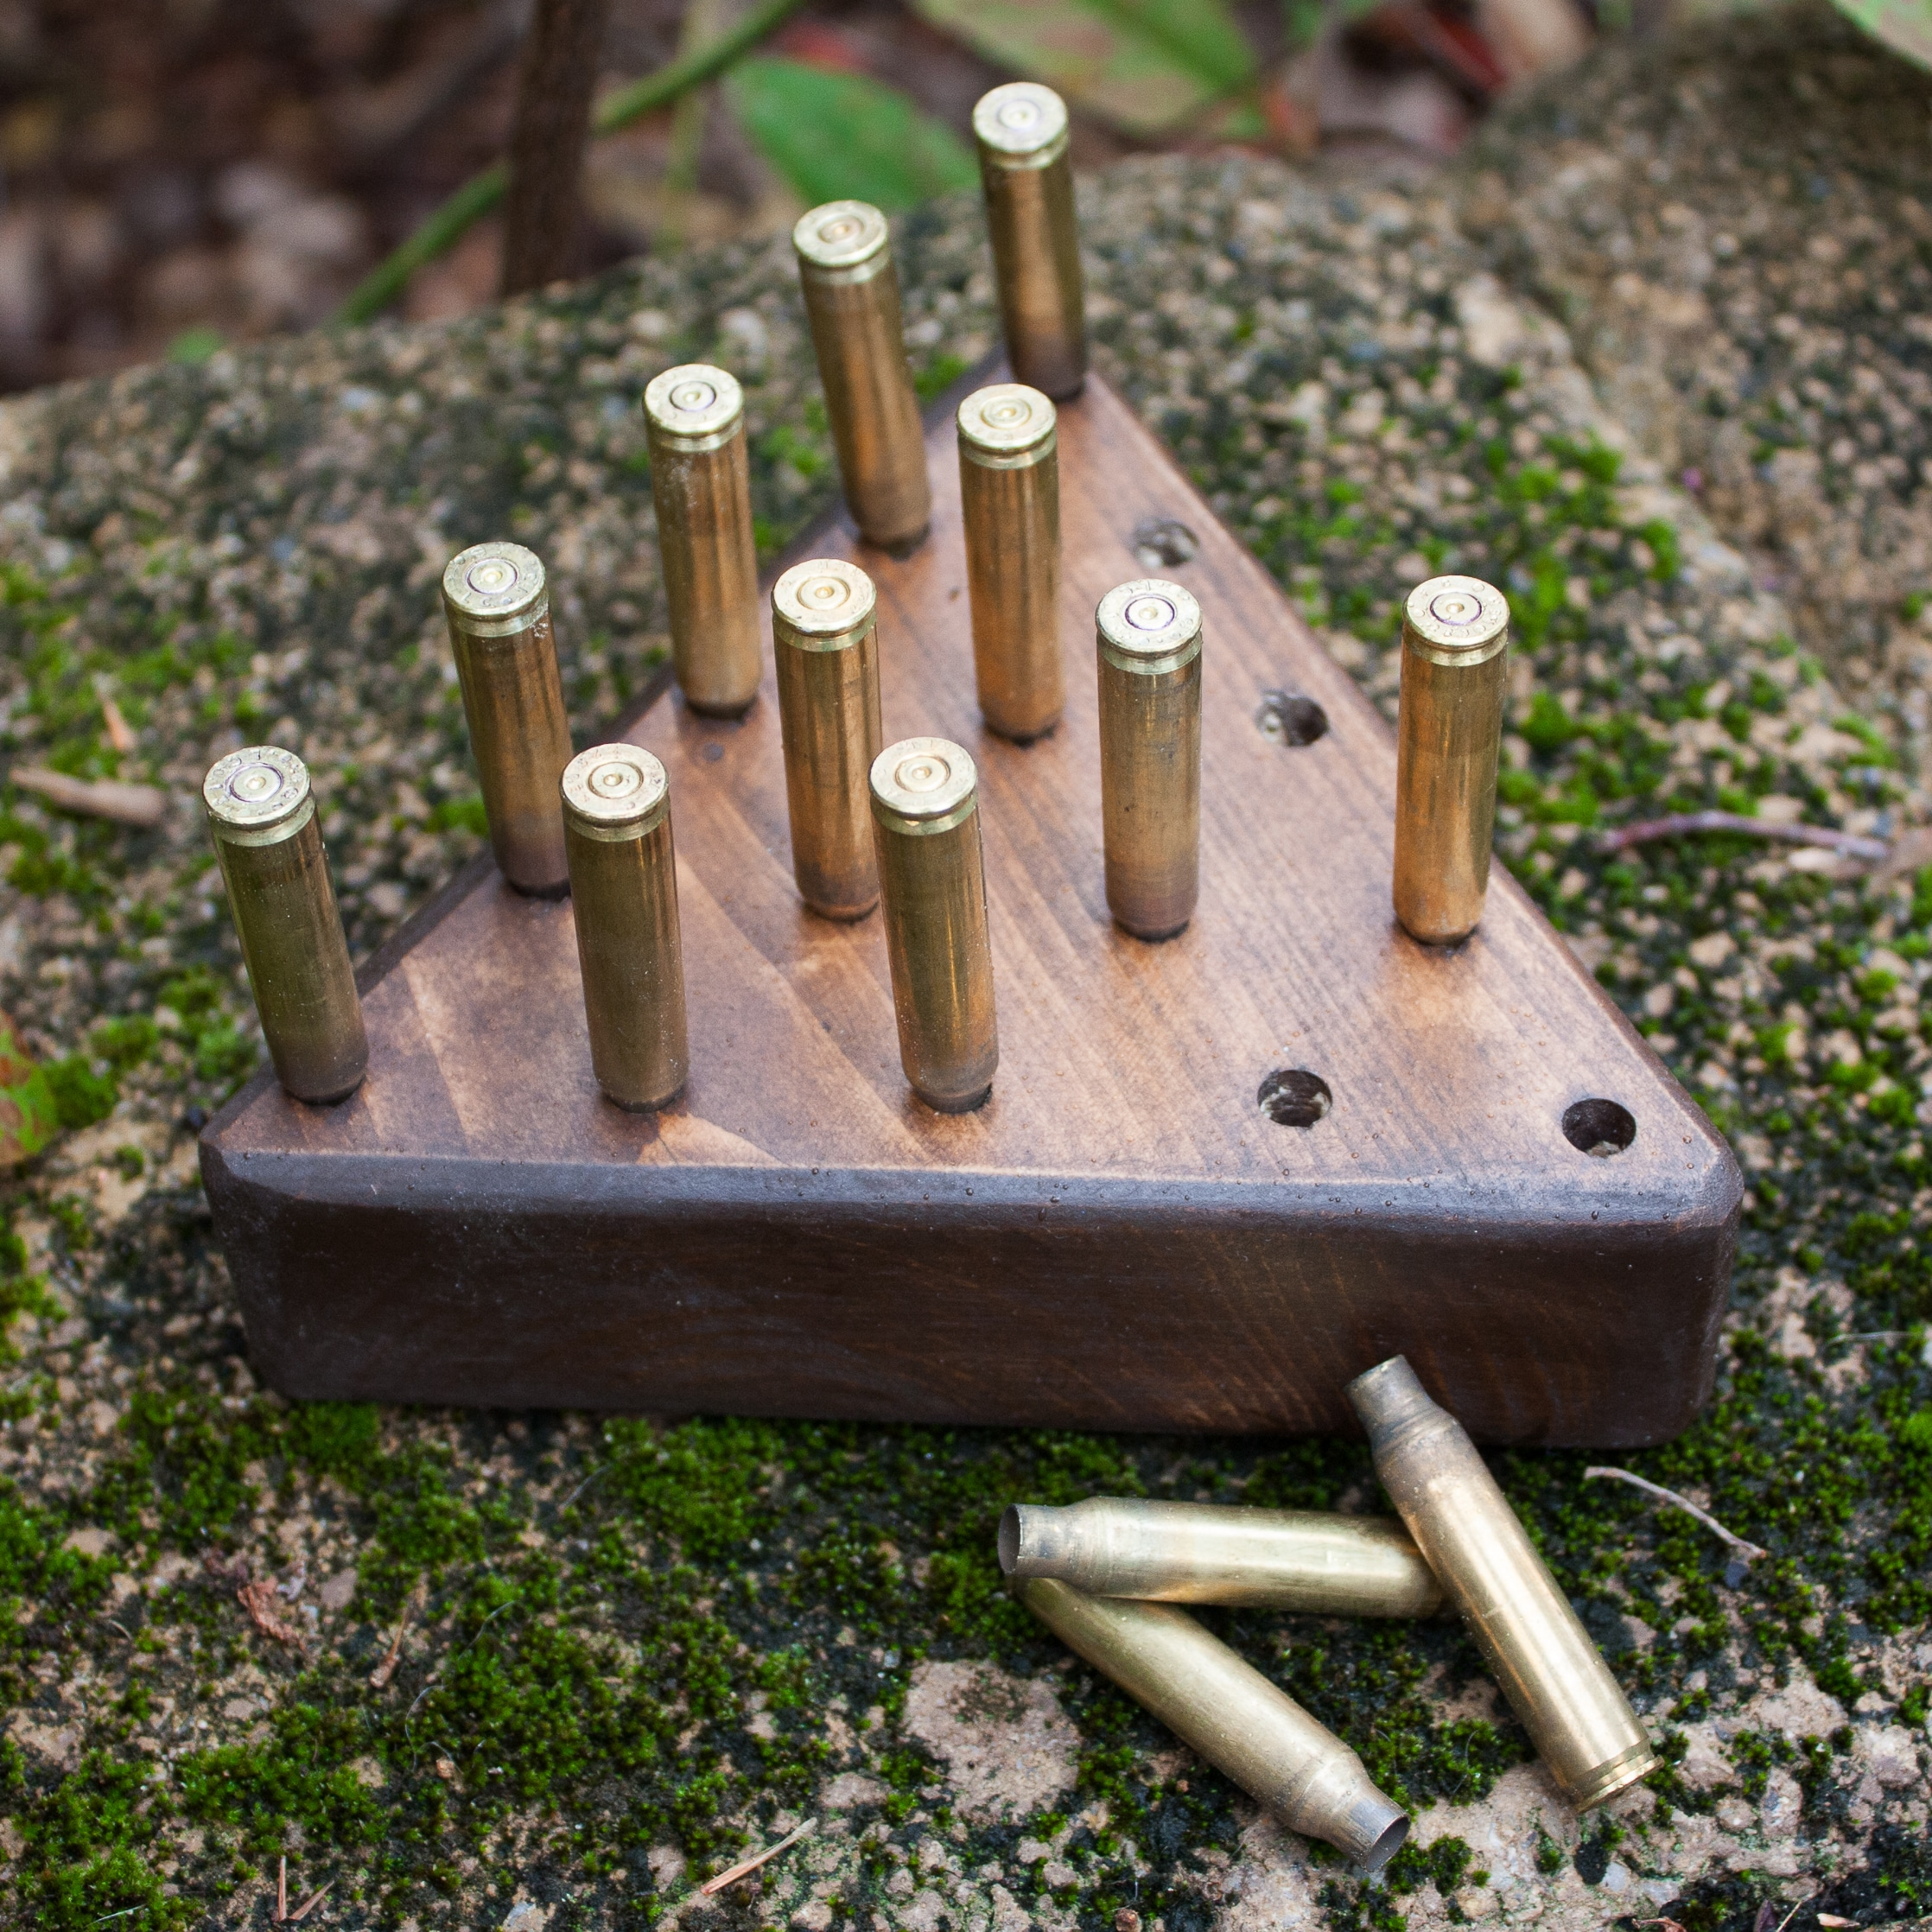 DIY Peg Game with Brass Casings - Learn how to make this game to play with your family or to give as a gift. #diy #woodworking #diygame #diygift #groomsmangift